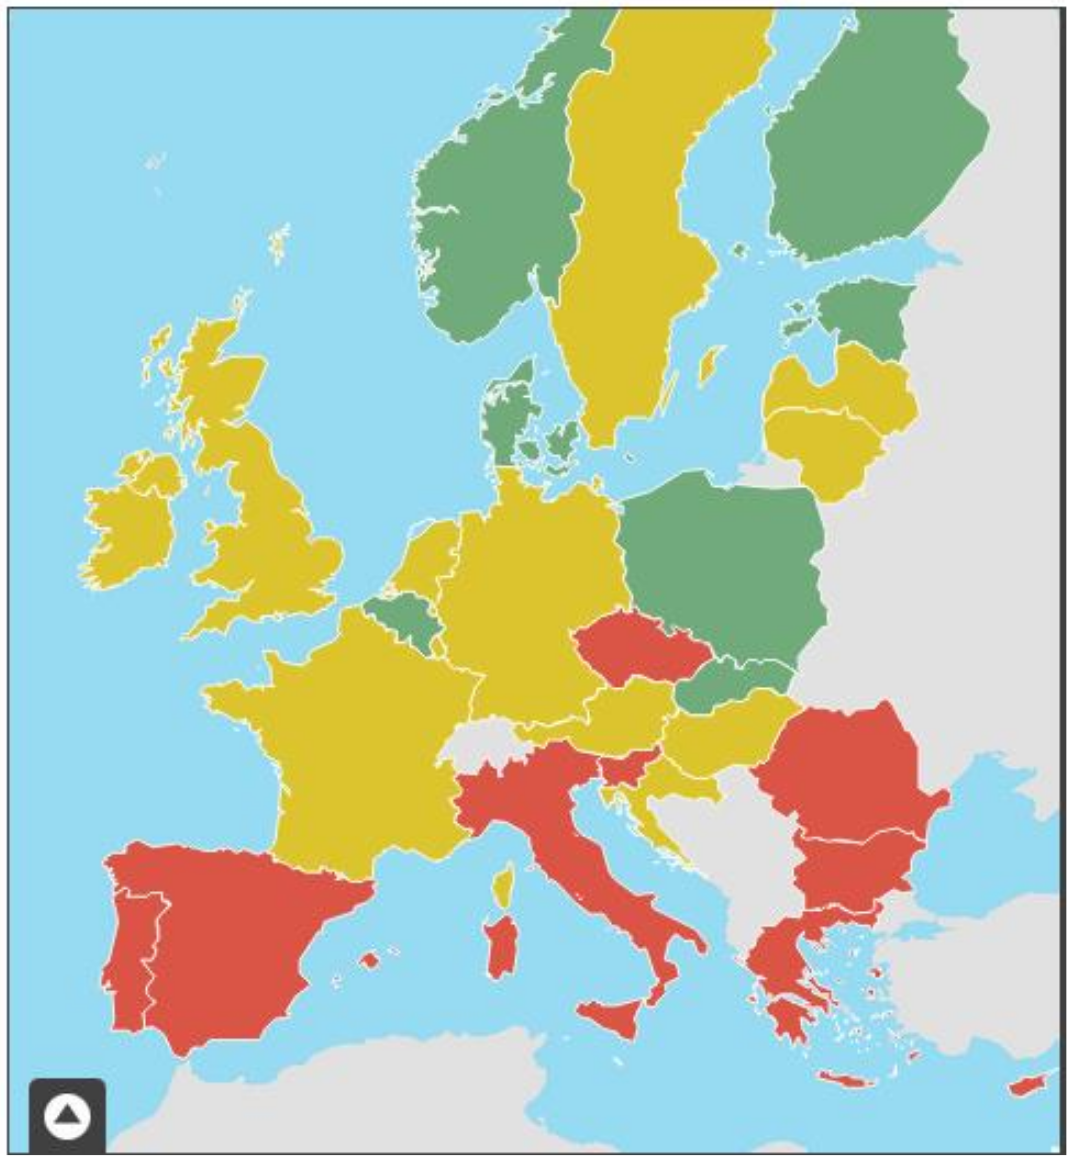 Source: European Commission, 2018 Single Market Scorecard for Public Procurement (based on 2017 data).